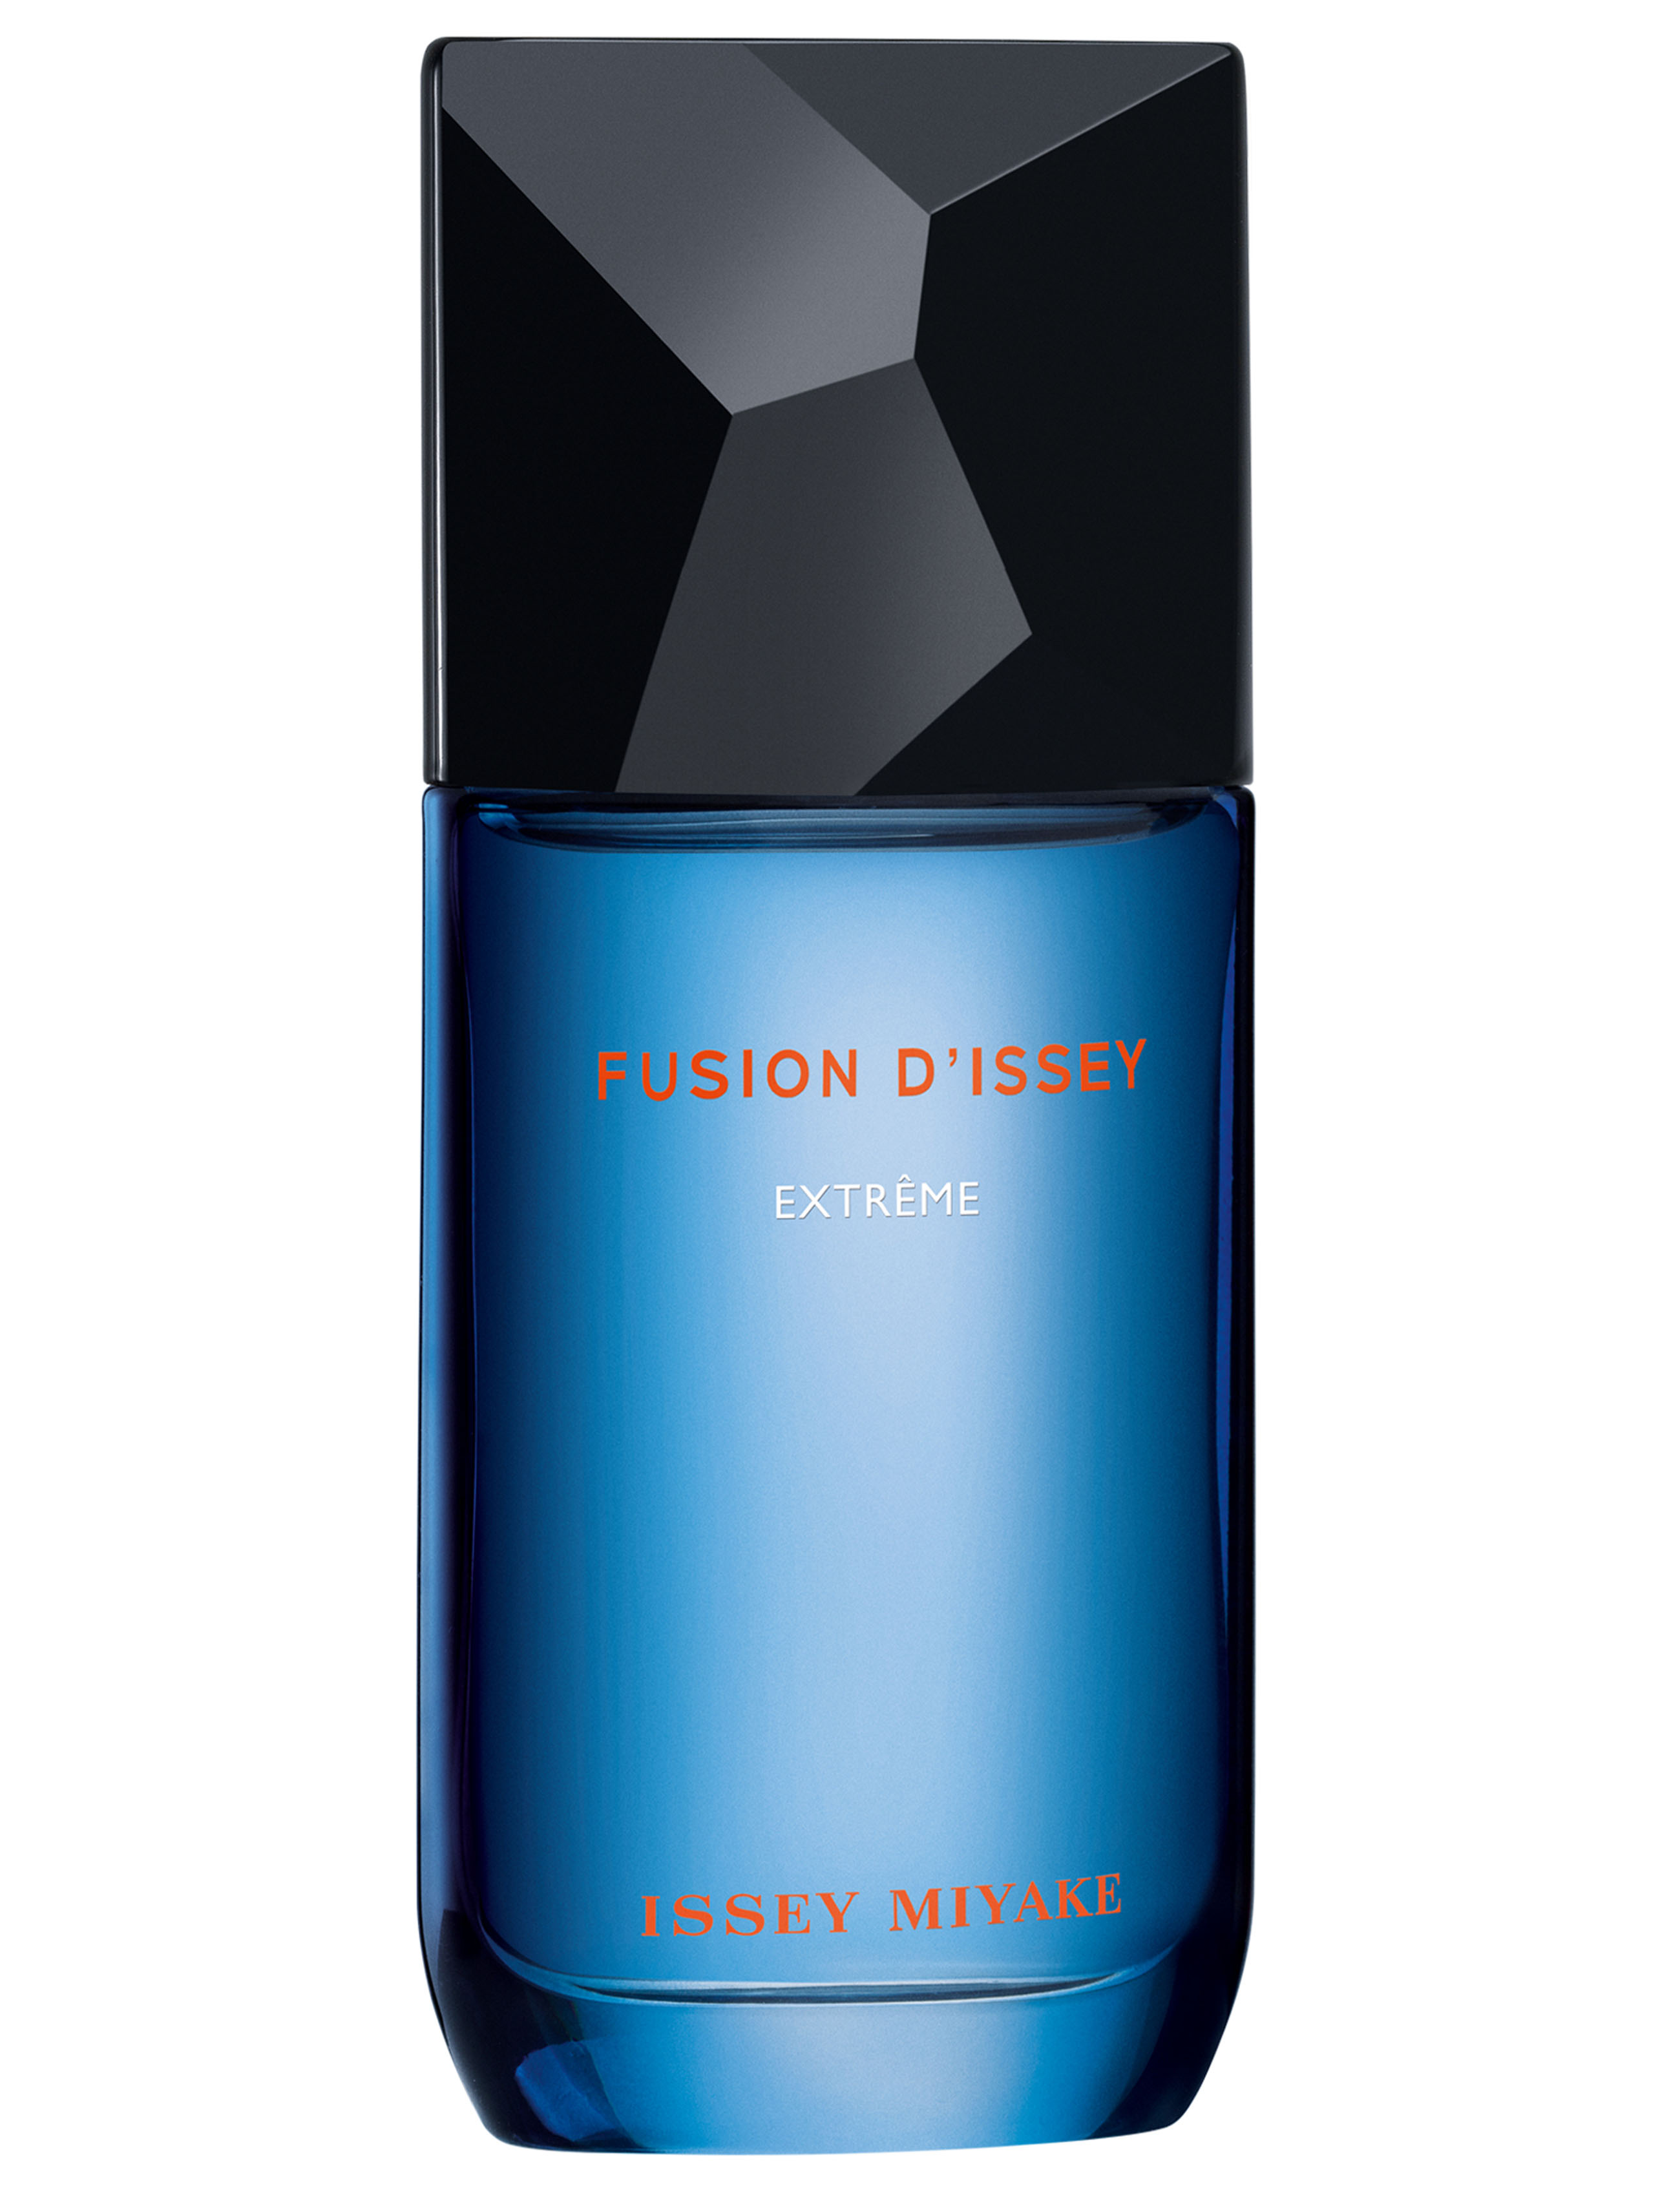 Issey Miyake Fusion D'Issey Extreme EDT, 100 ml